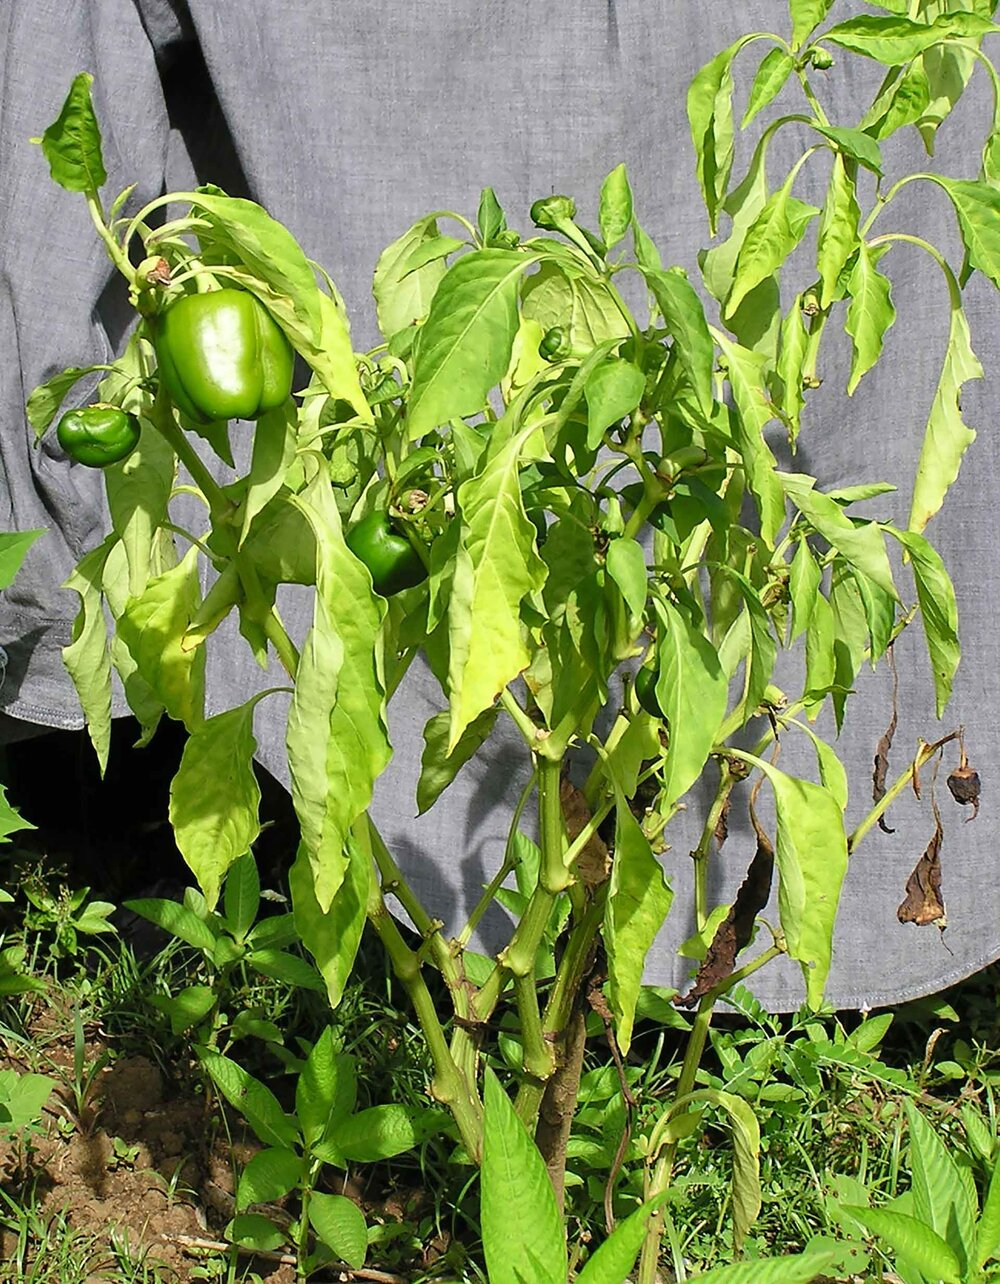 Bacterial wilt and discolouration (chlorosis) on capsicums. Easily mistaken for water issues, lack of nutrients or glyphosate spraying.    Image source